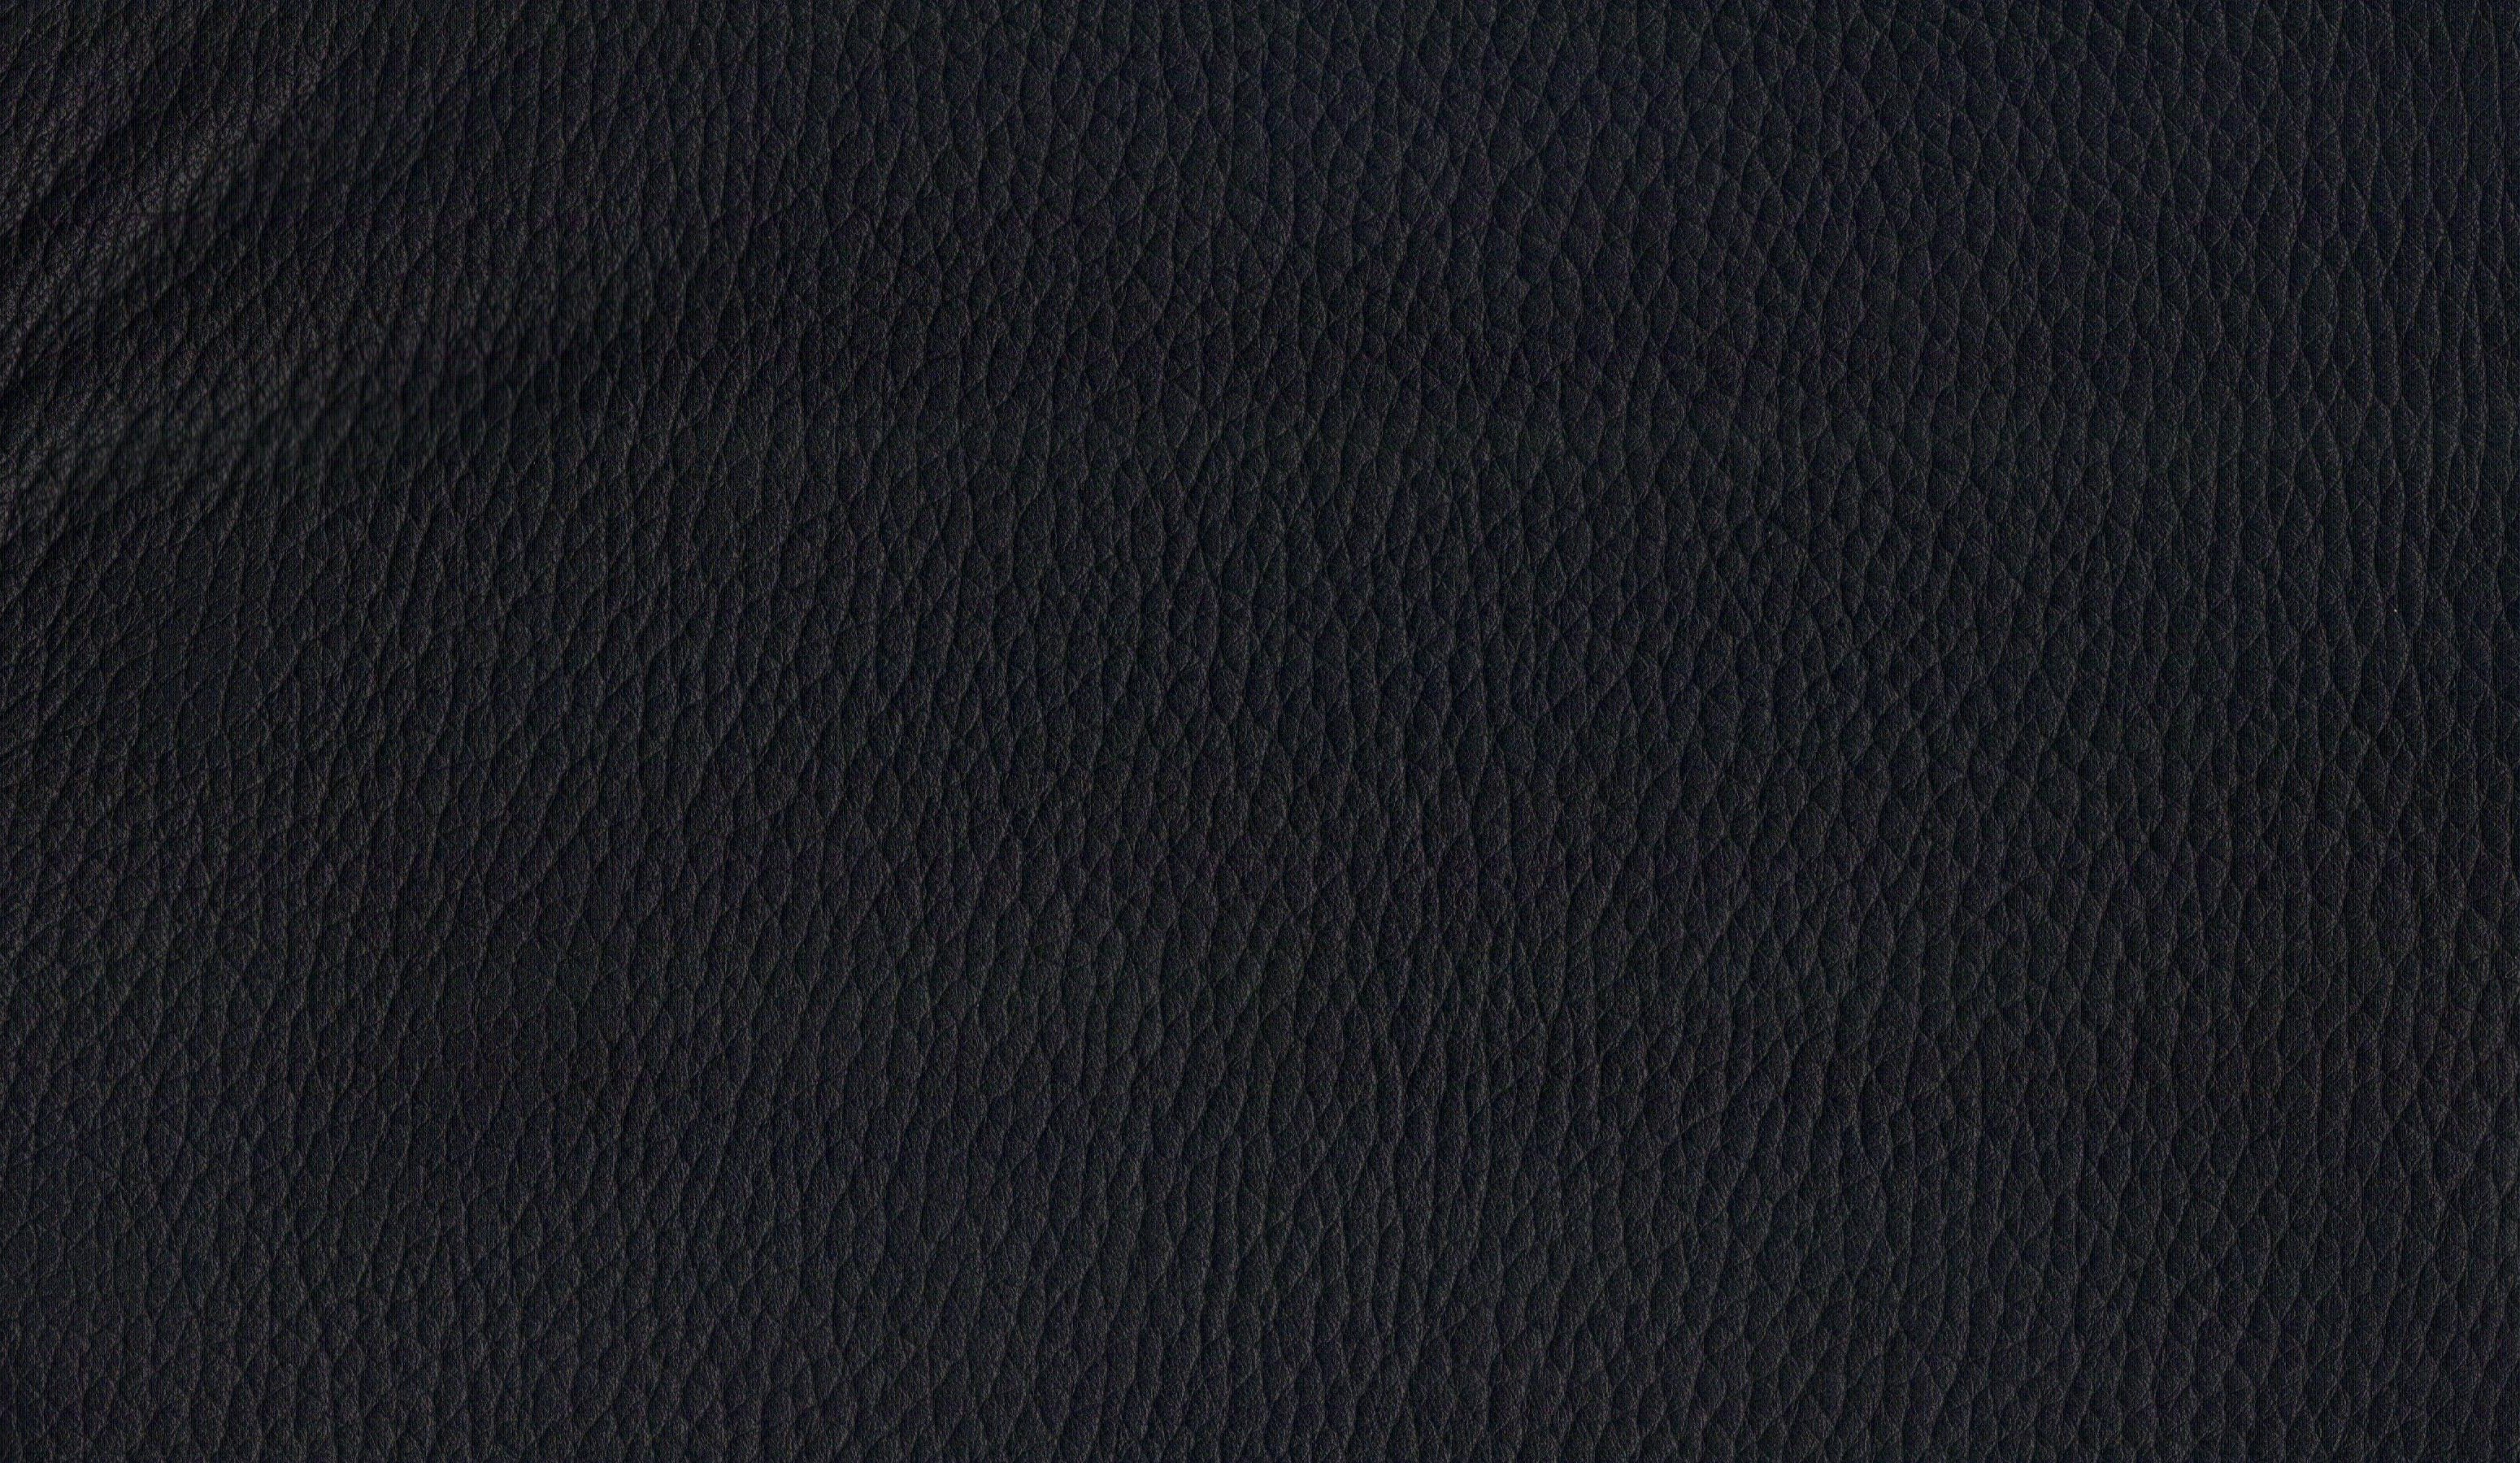 Black Leather Fabric Texture The gallery for -->...